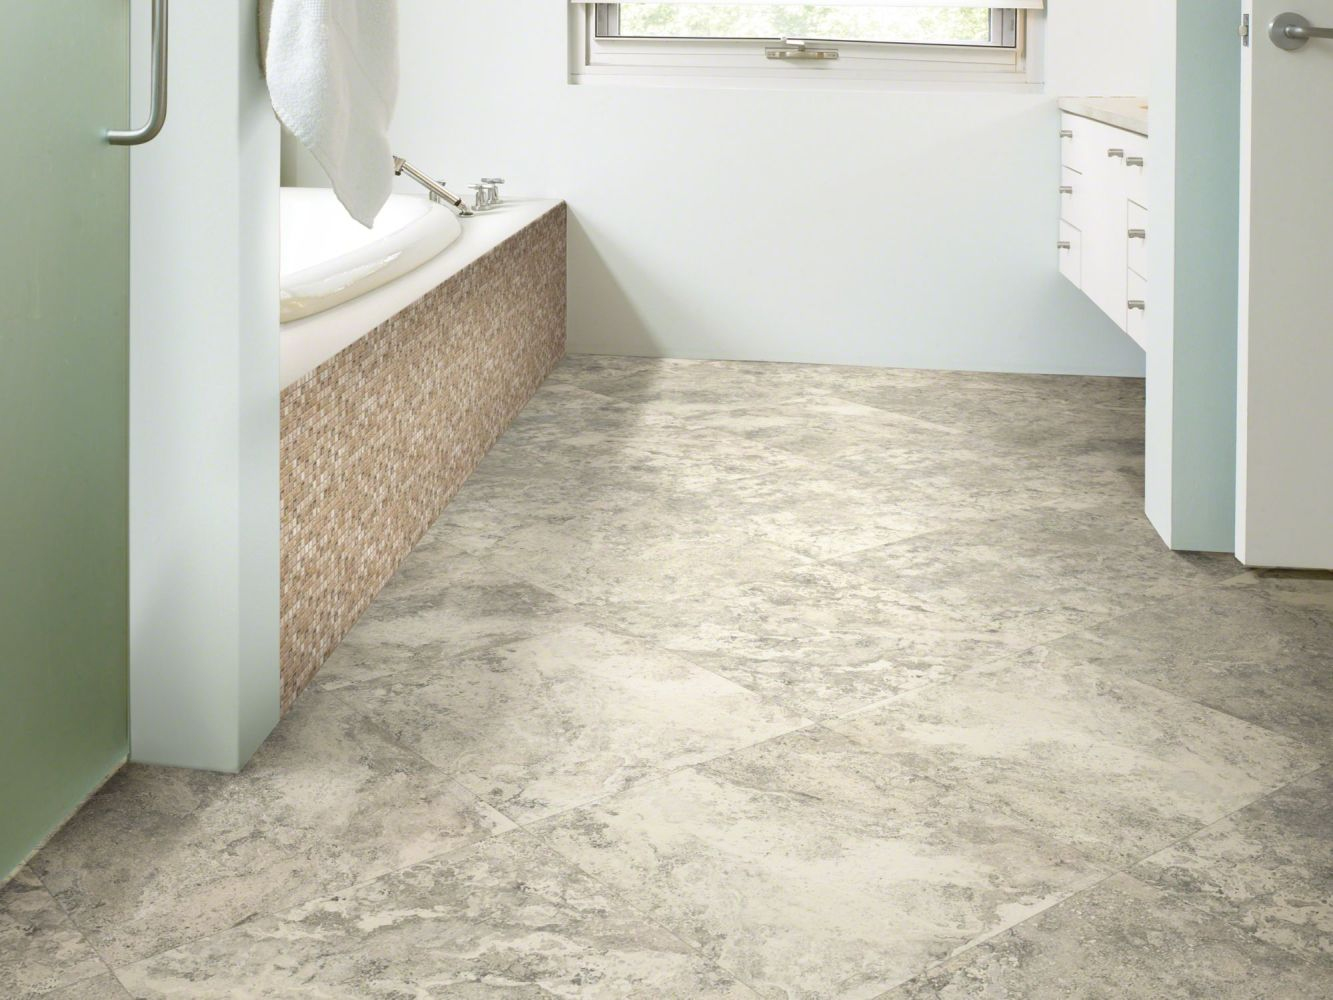 Shaw Floors Resilient Property Solutions Expo Tile 6mil Sydney 00541_VE128